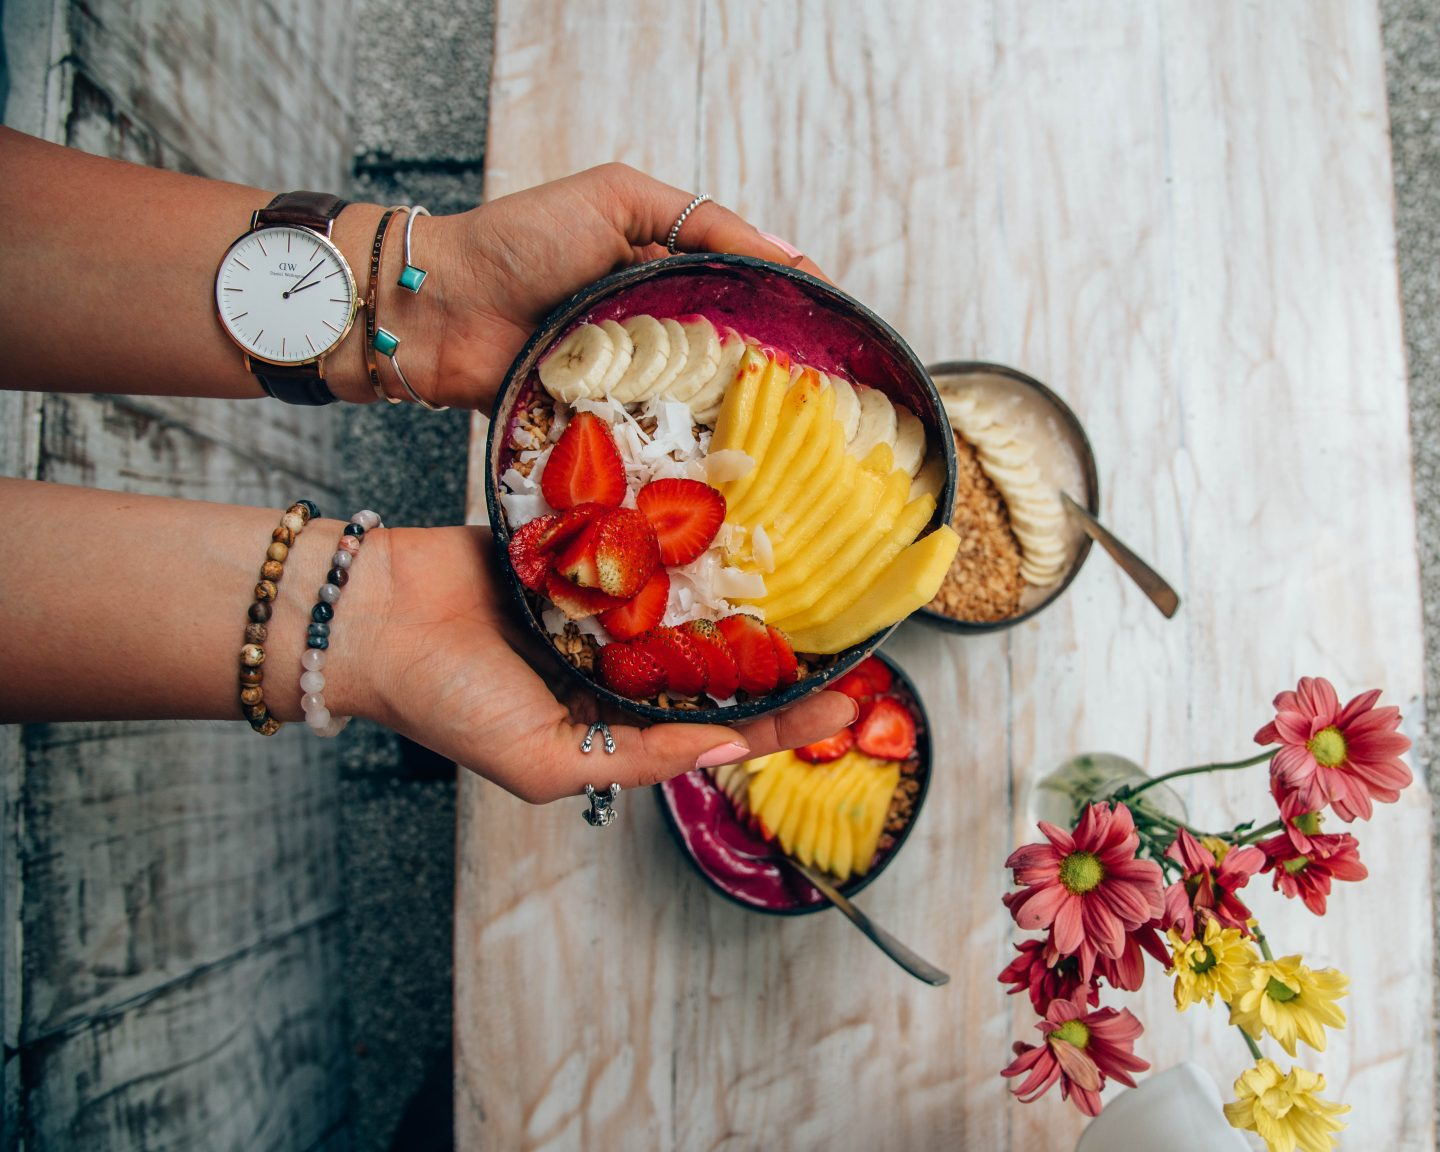 One of many smoothie bowl options at Nalu Bowls